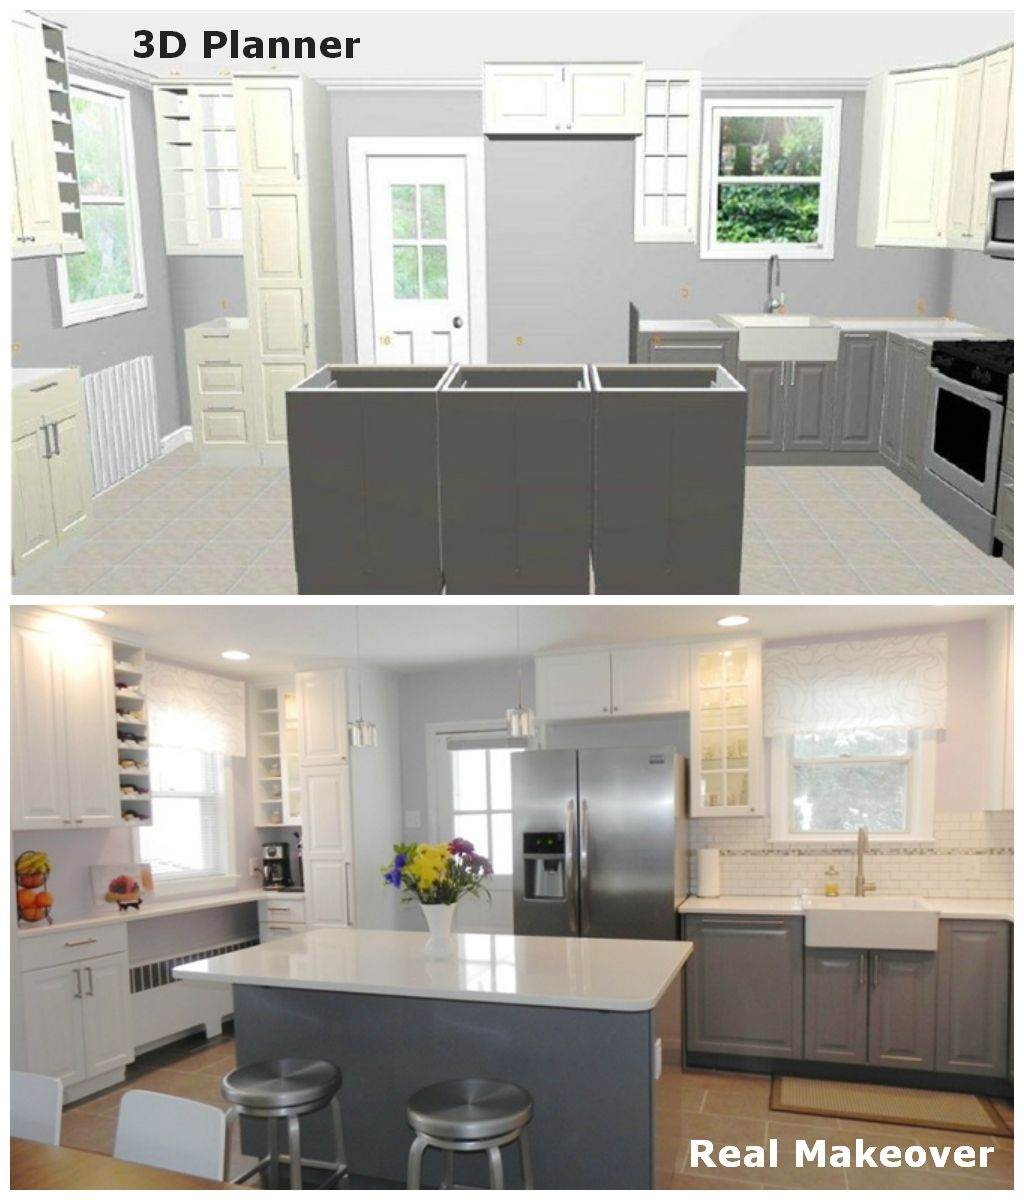 Home Planner For Ikea Full Version This Ikea Blogger Created Her Dream Kitchen In Ikea 3d